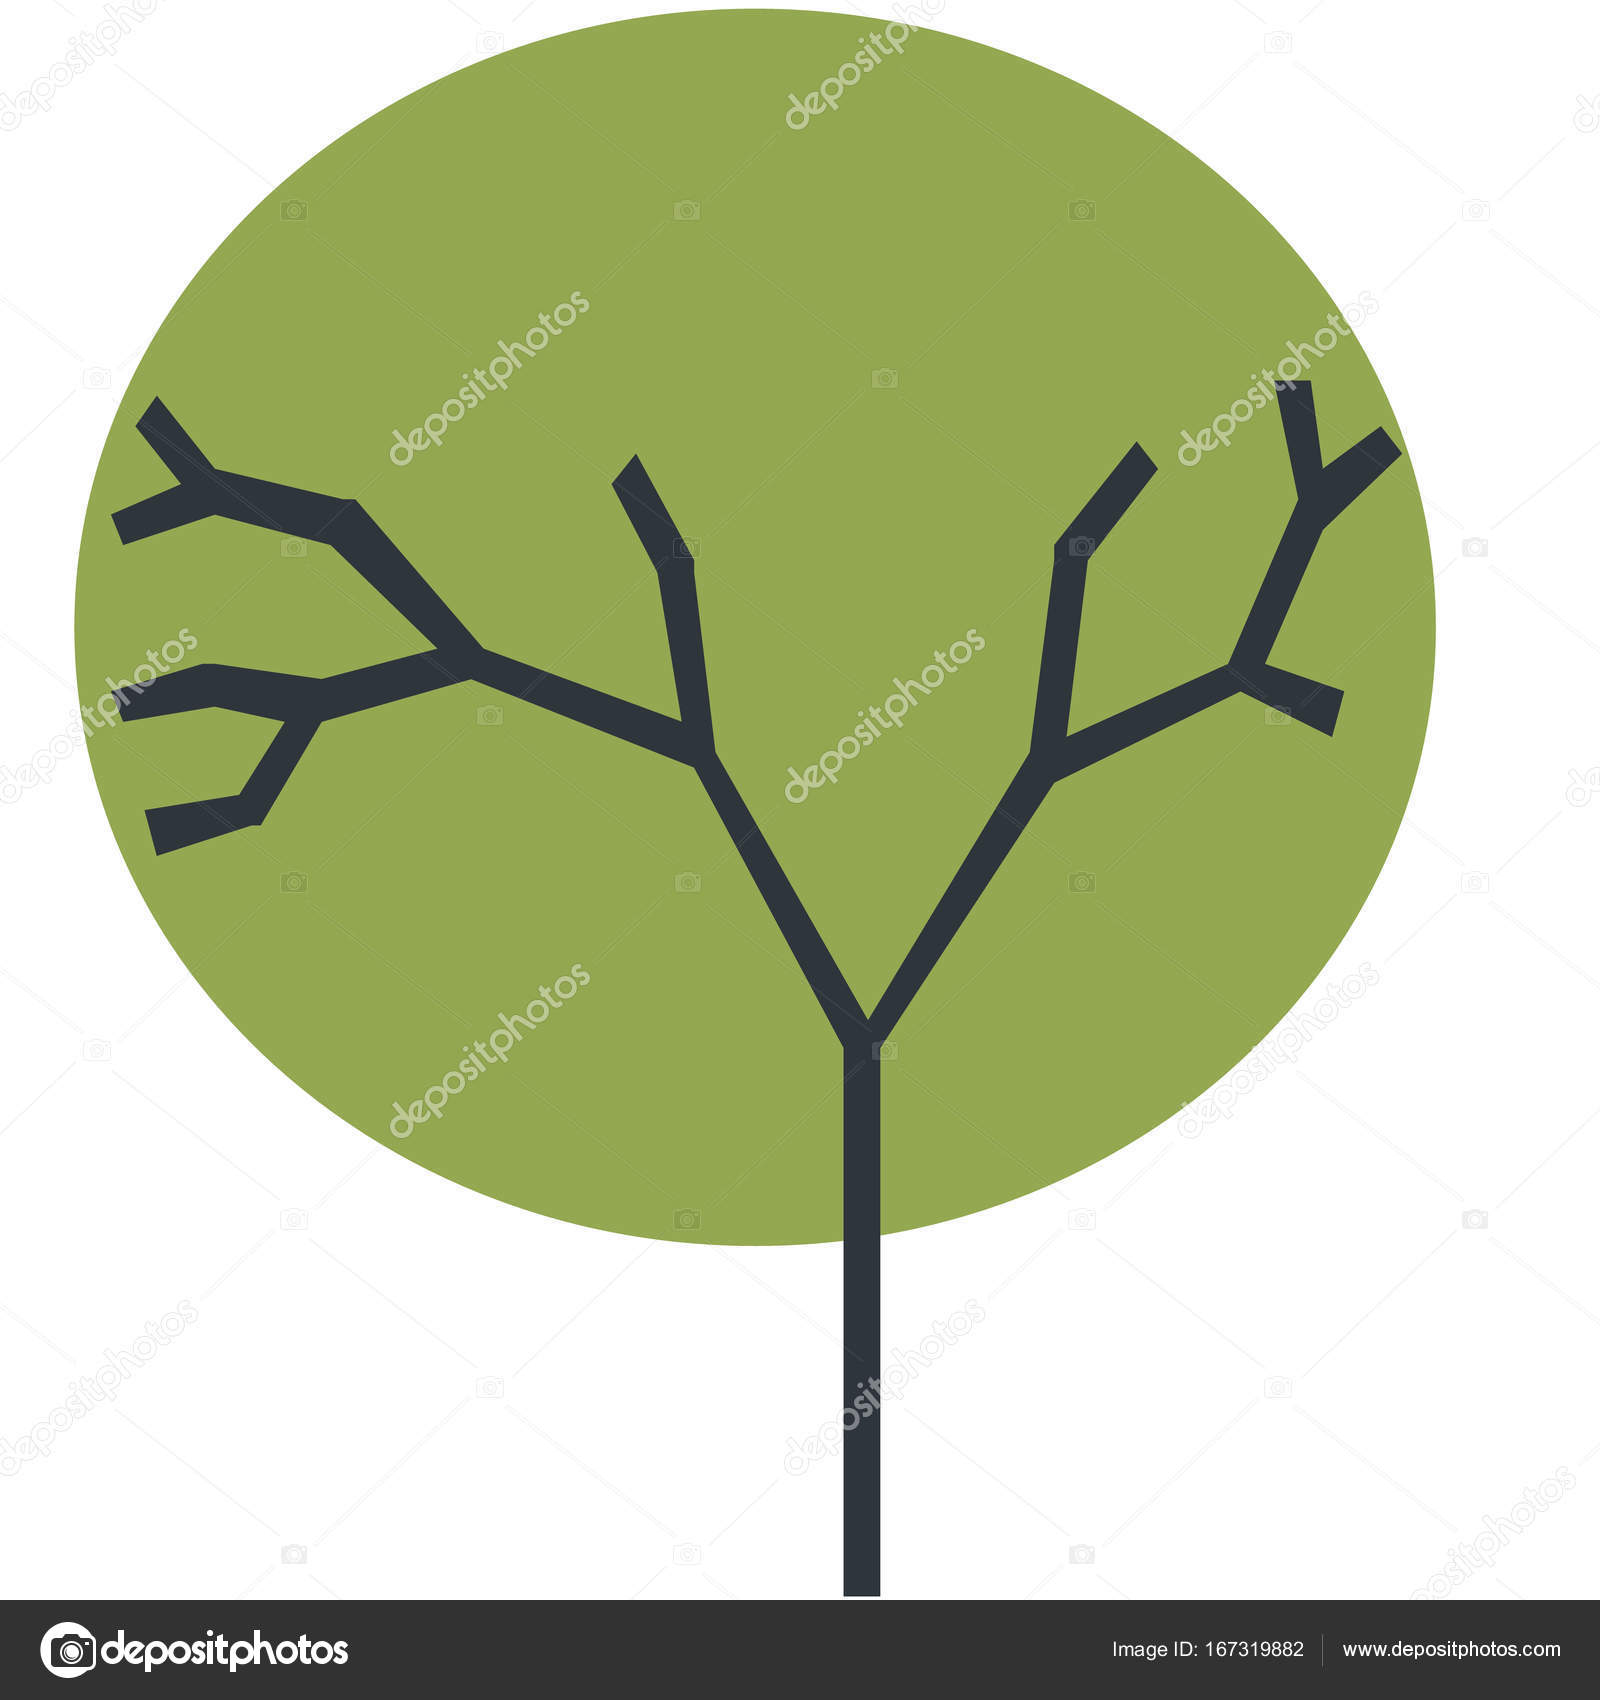 The silhouette of a tree with a trunk and branches with abstract ...